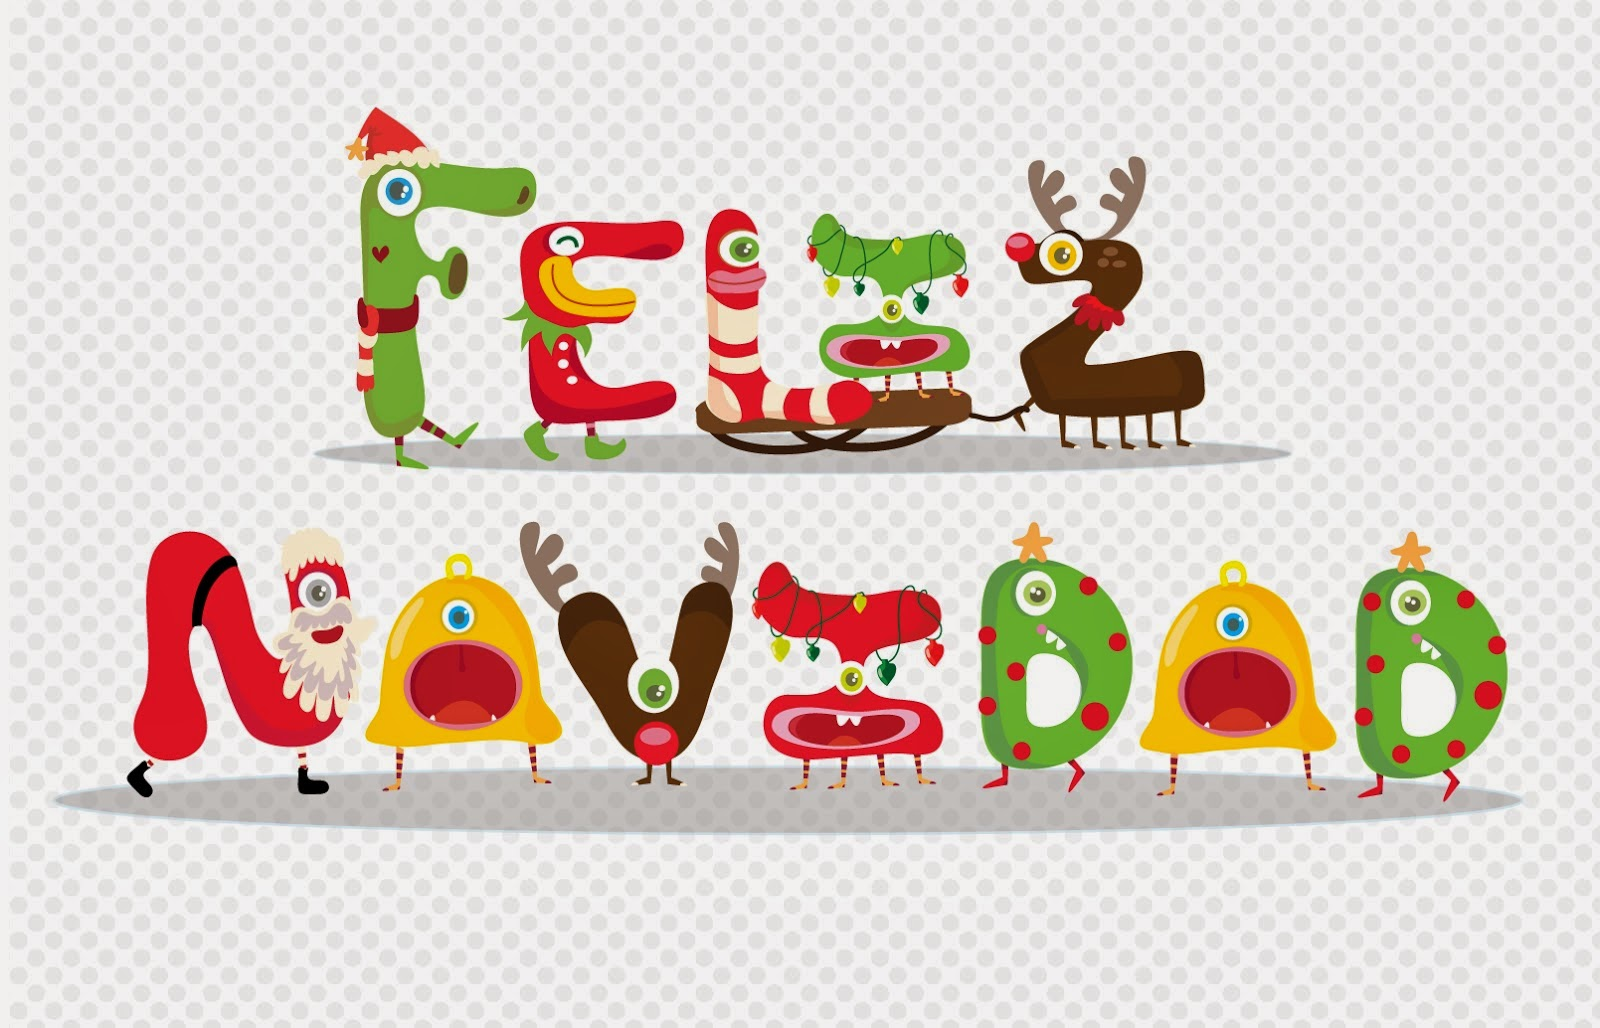 Merry Christmas and Happy New Year in Spanish.